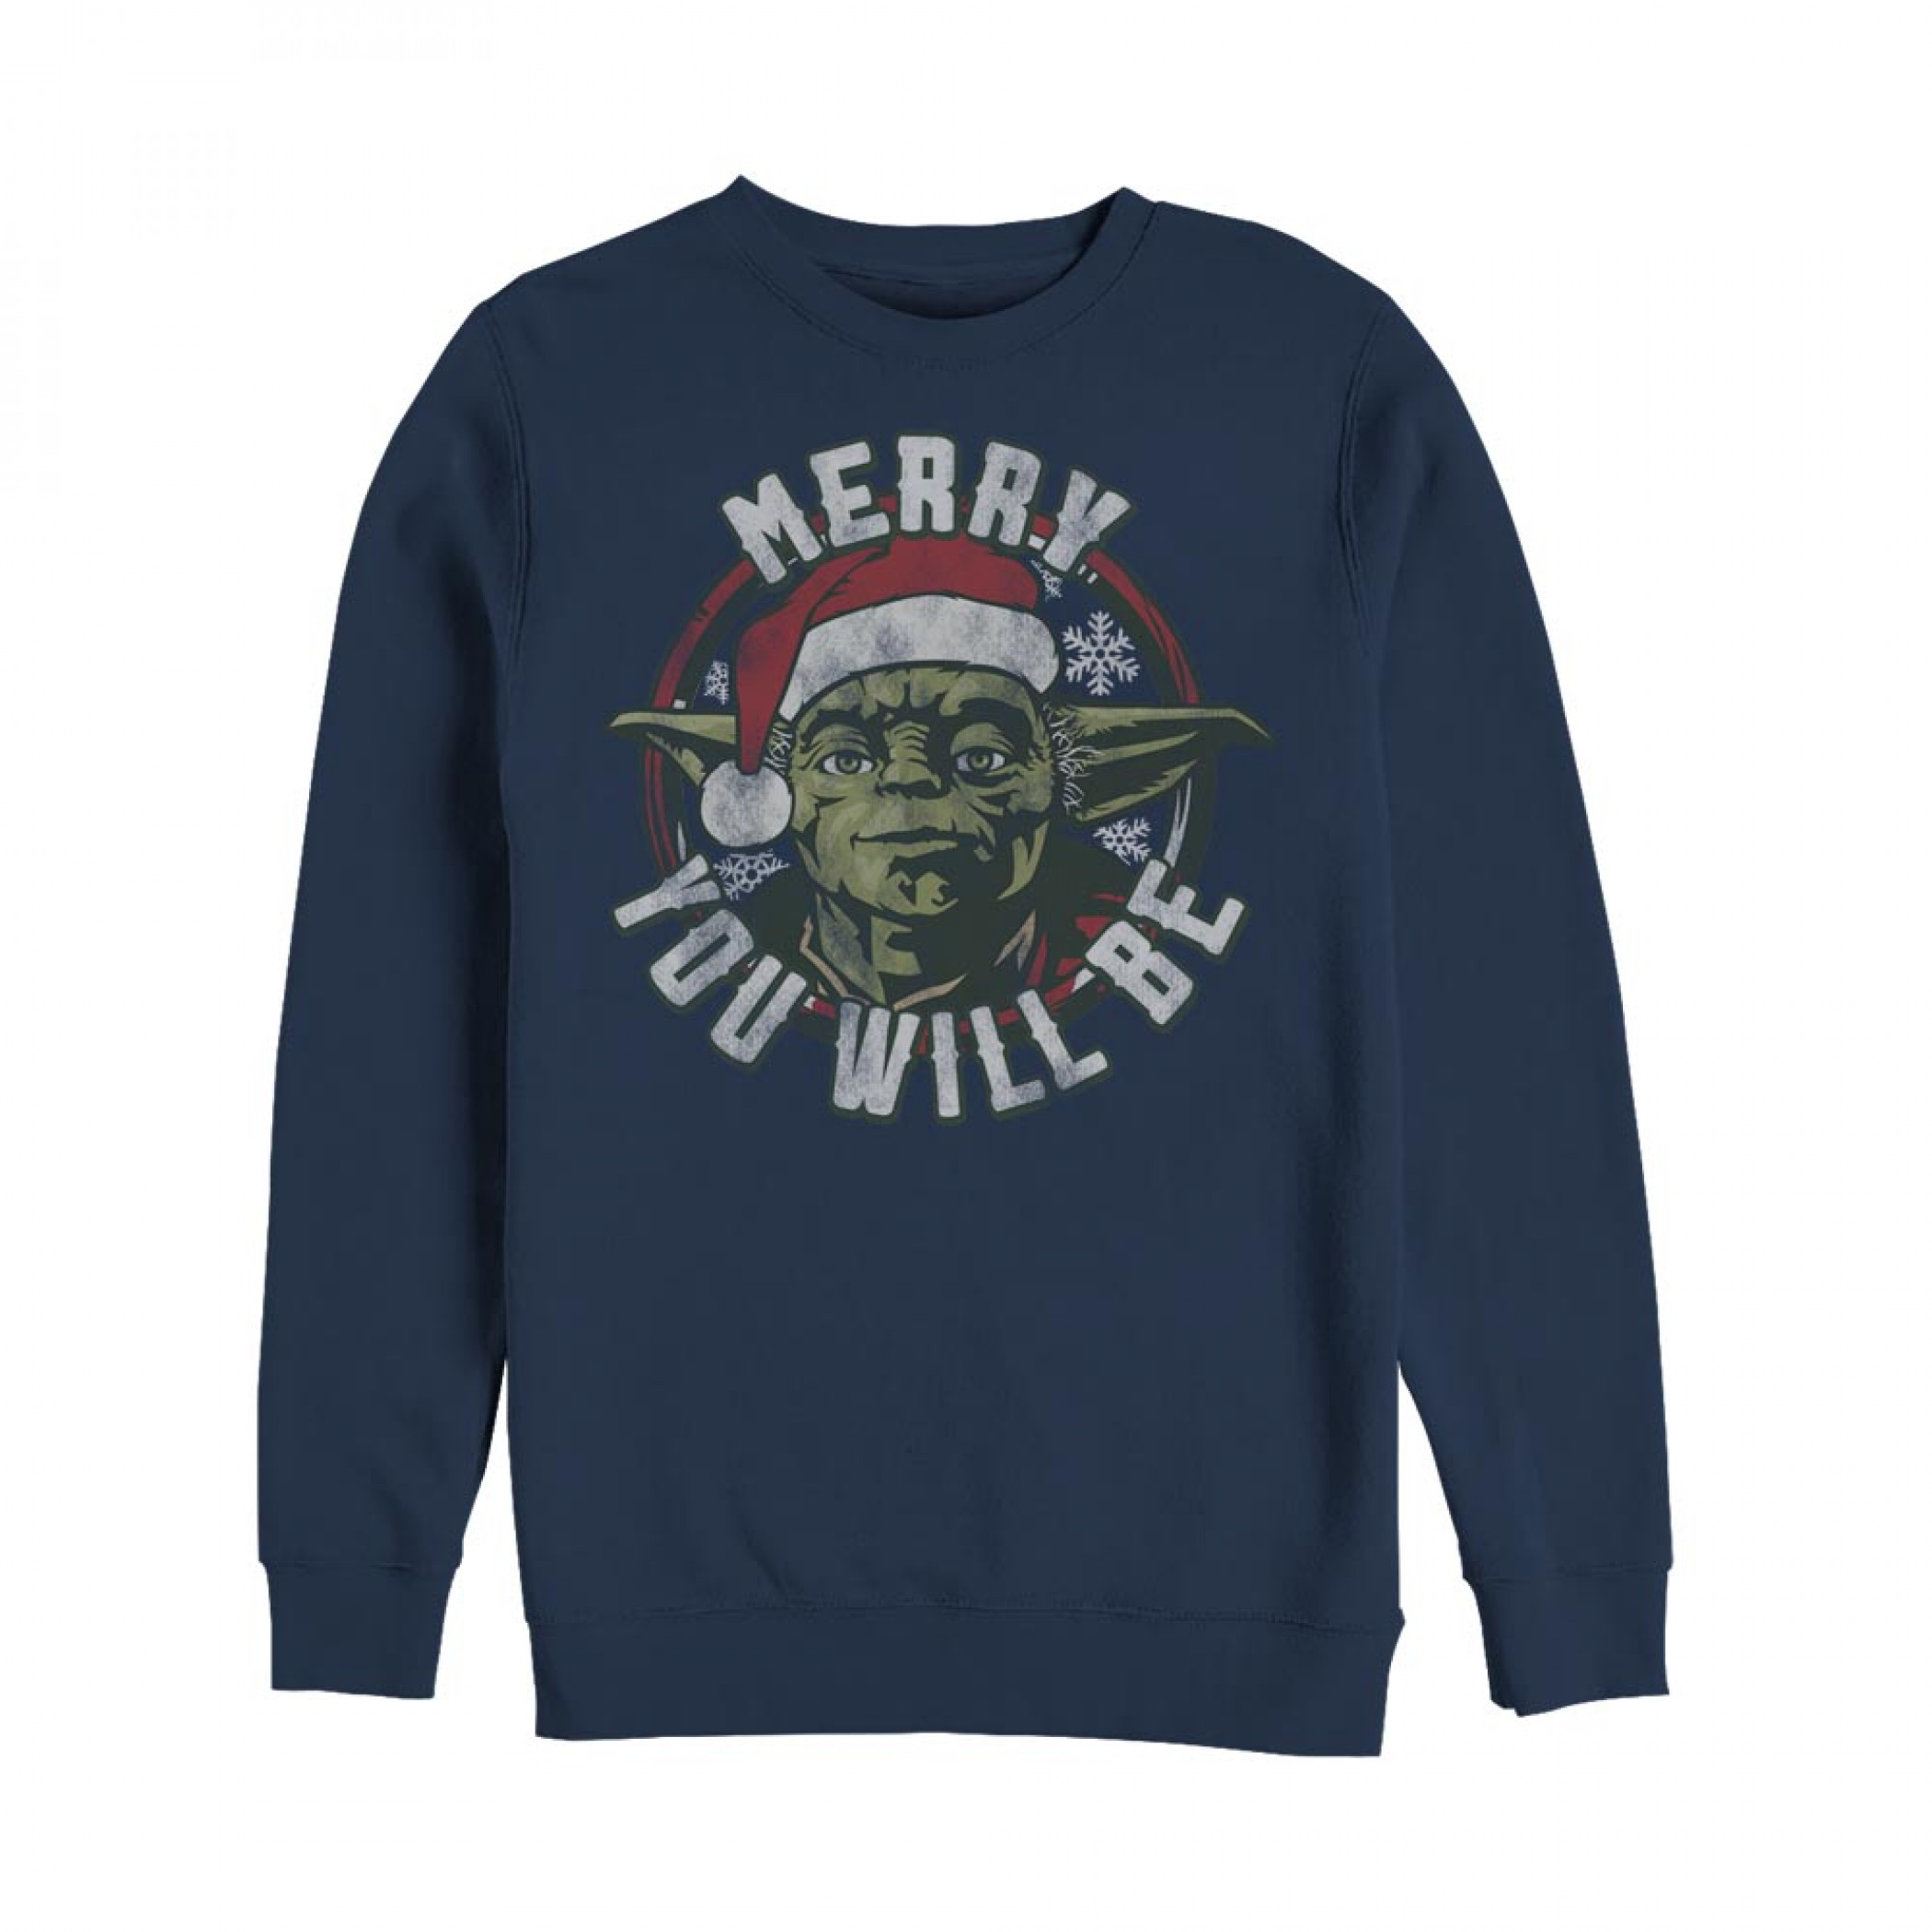 Star Wars Merry You Will Be Ugly Christmas Sweatshirt